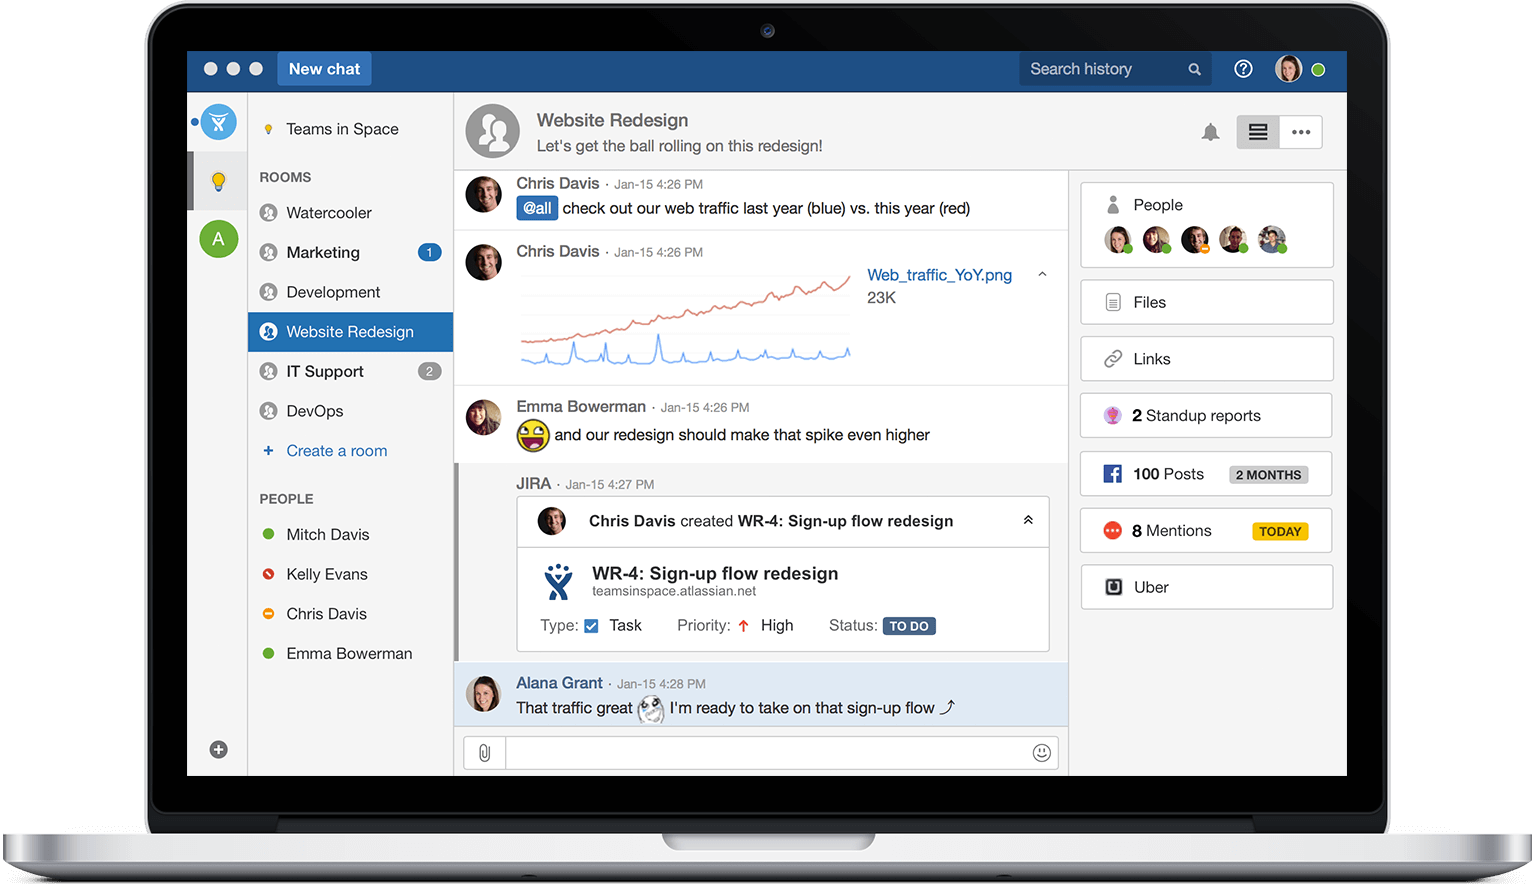 HipChat is group chat, file sharing, video chat & screen